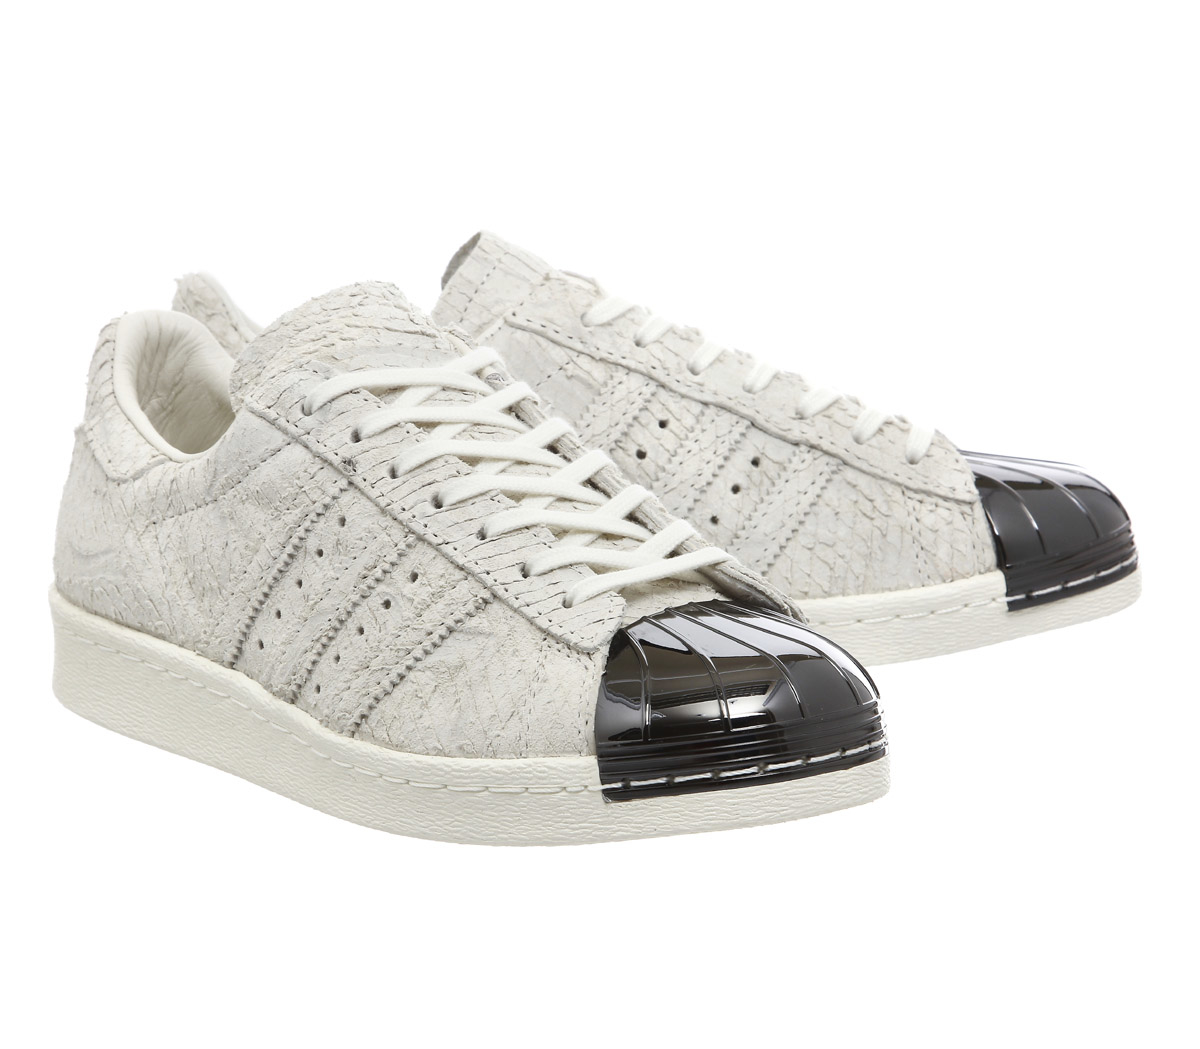 adidas superstar 80 39 s metal toe w in white lyst. Black Bedroom Furniture Sets. Home Design Ideas